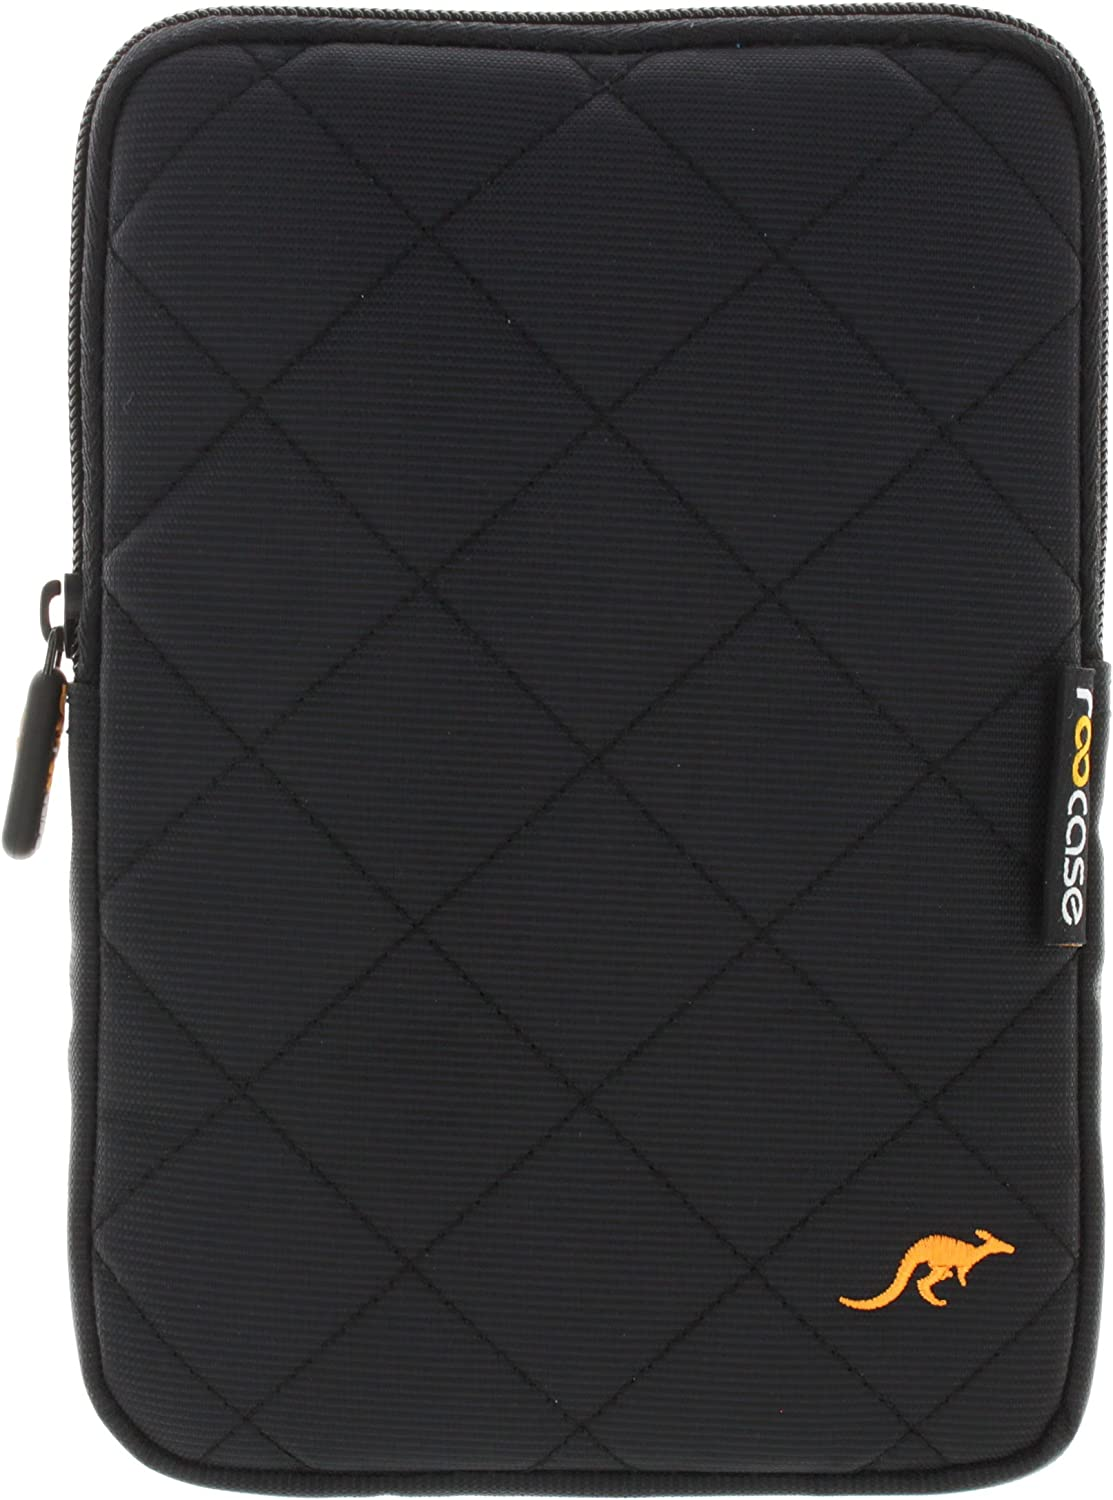 roocase Travel Mate Super Bubble 7-Inch Tablet Nylon Sleeve Cover